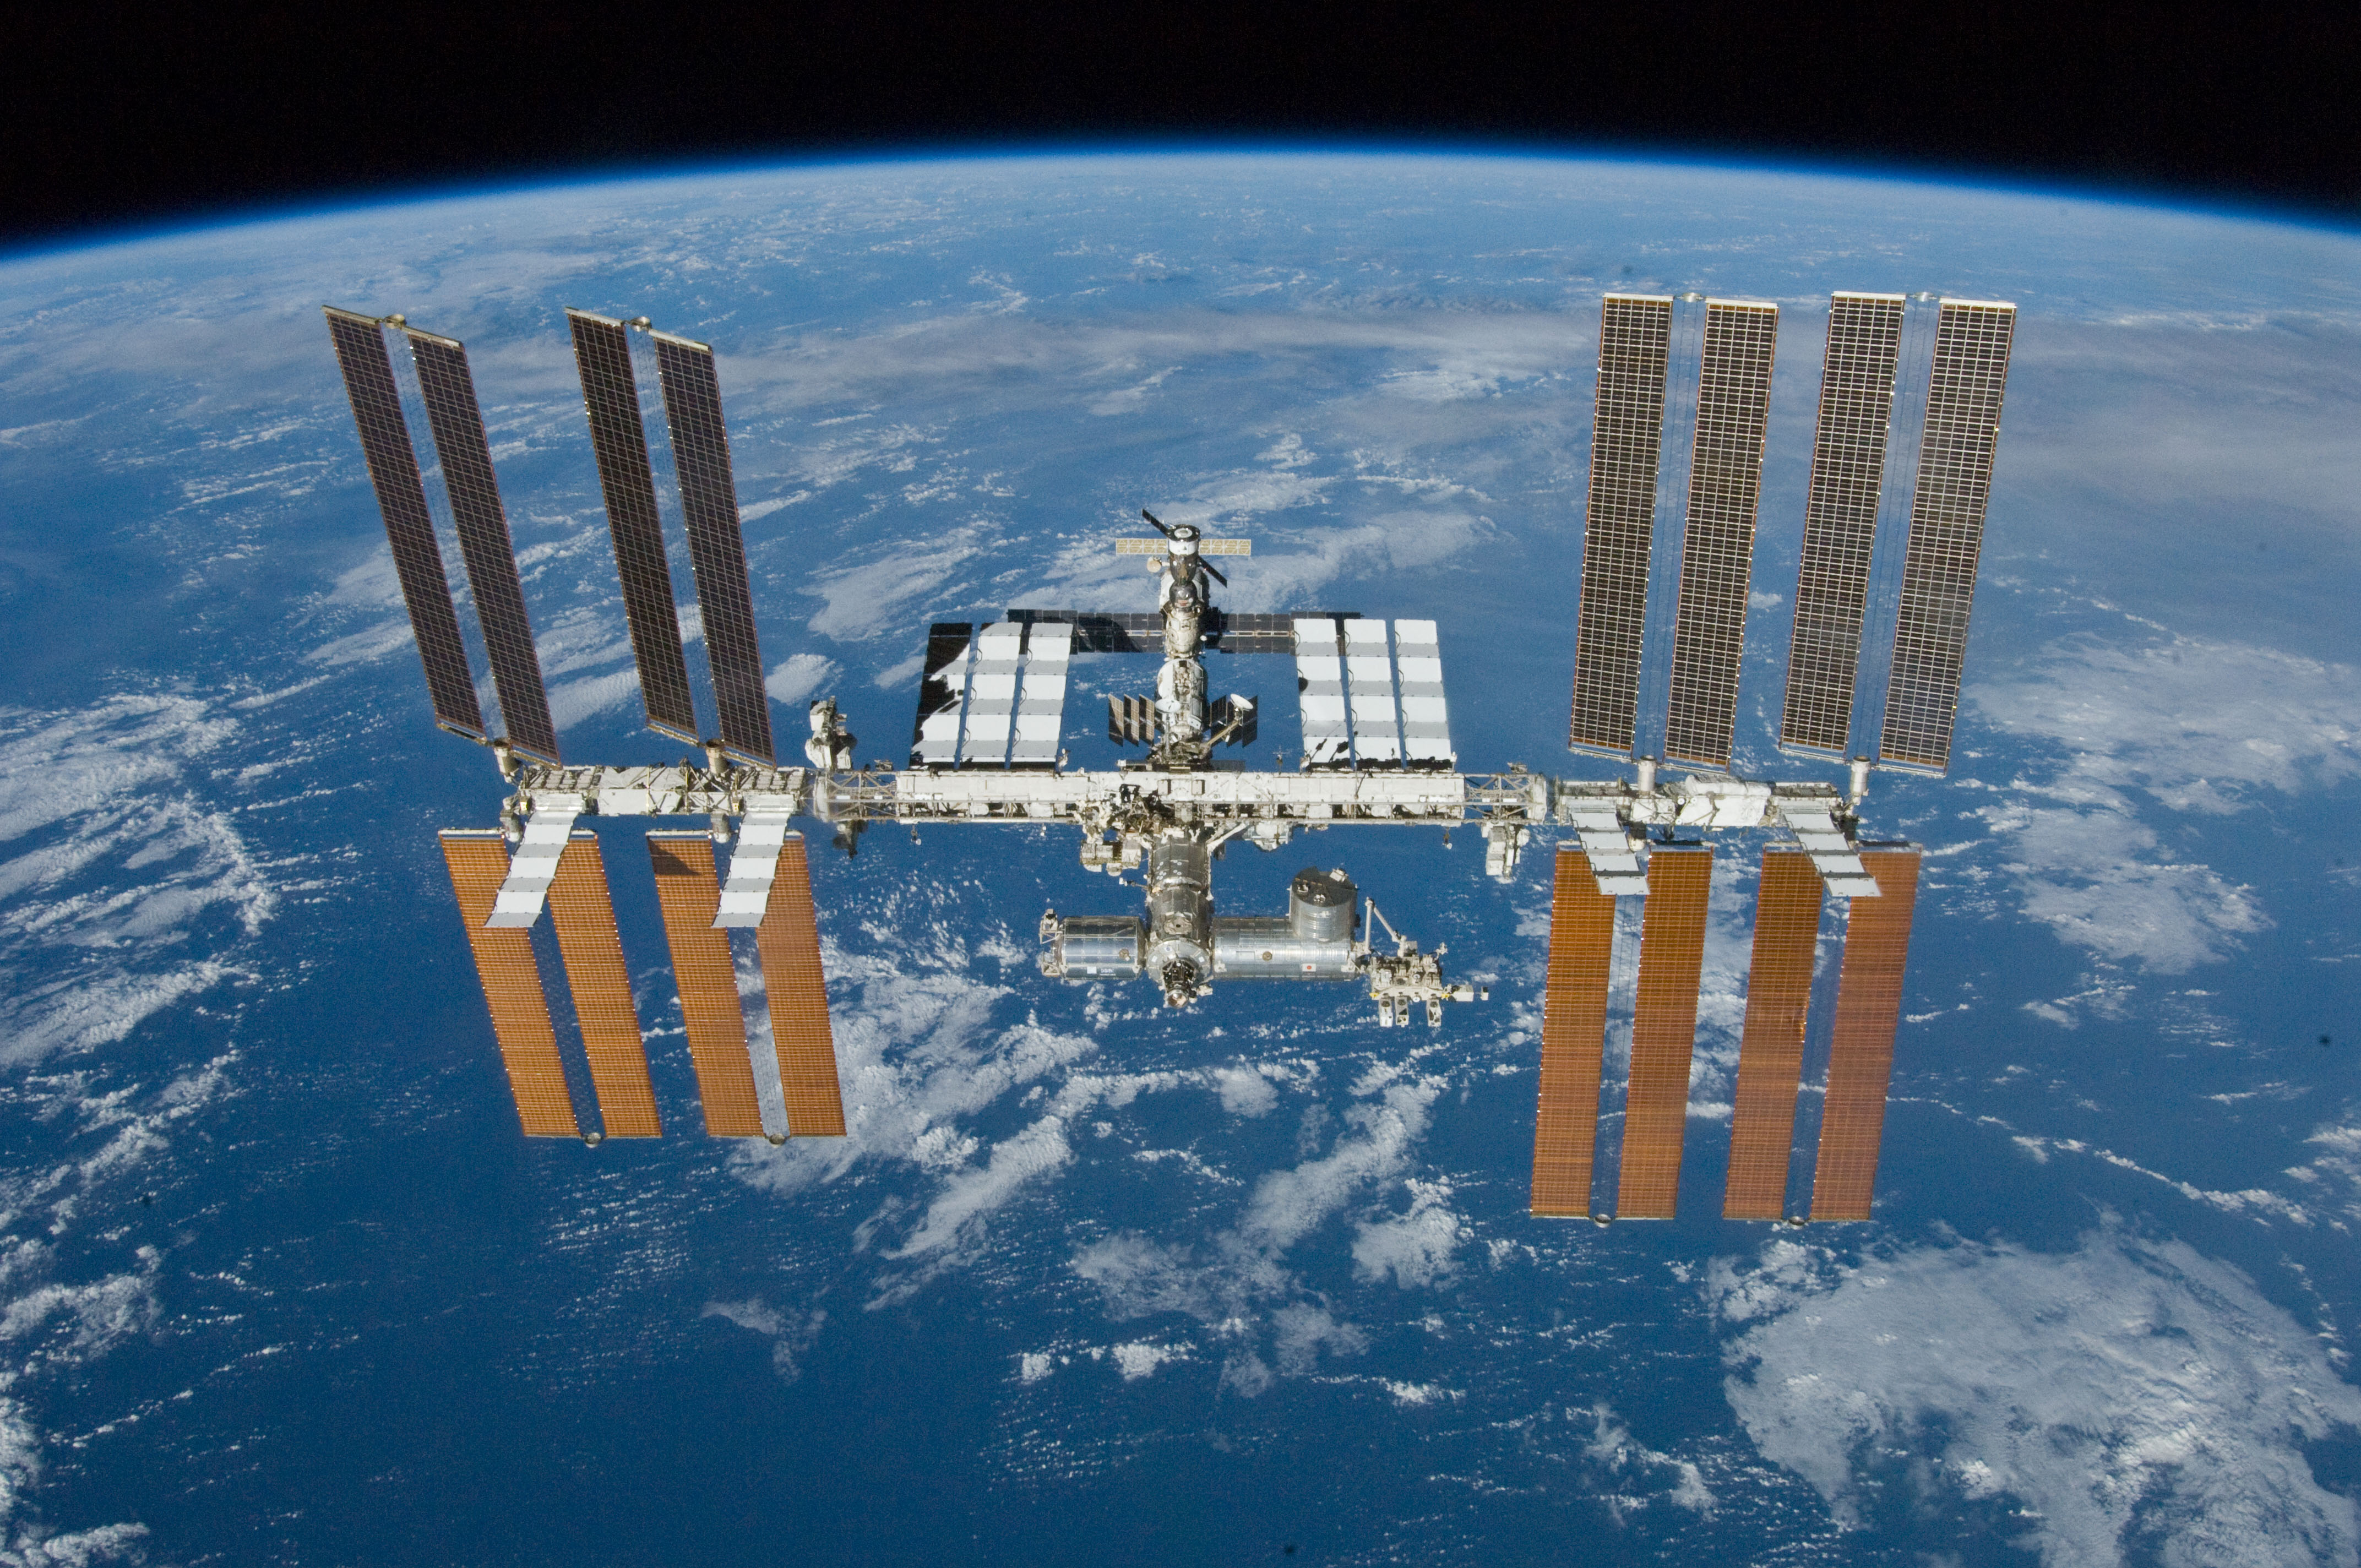 The International Space Station in orbit.